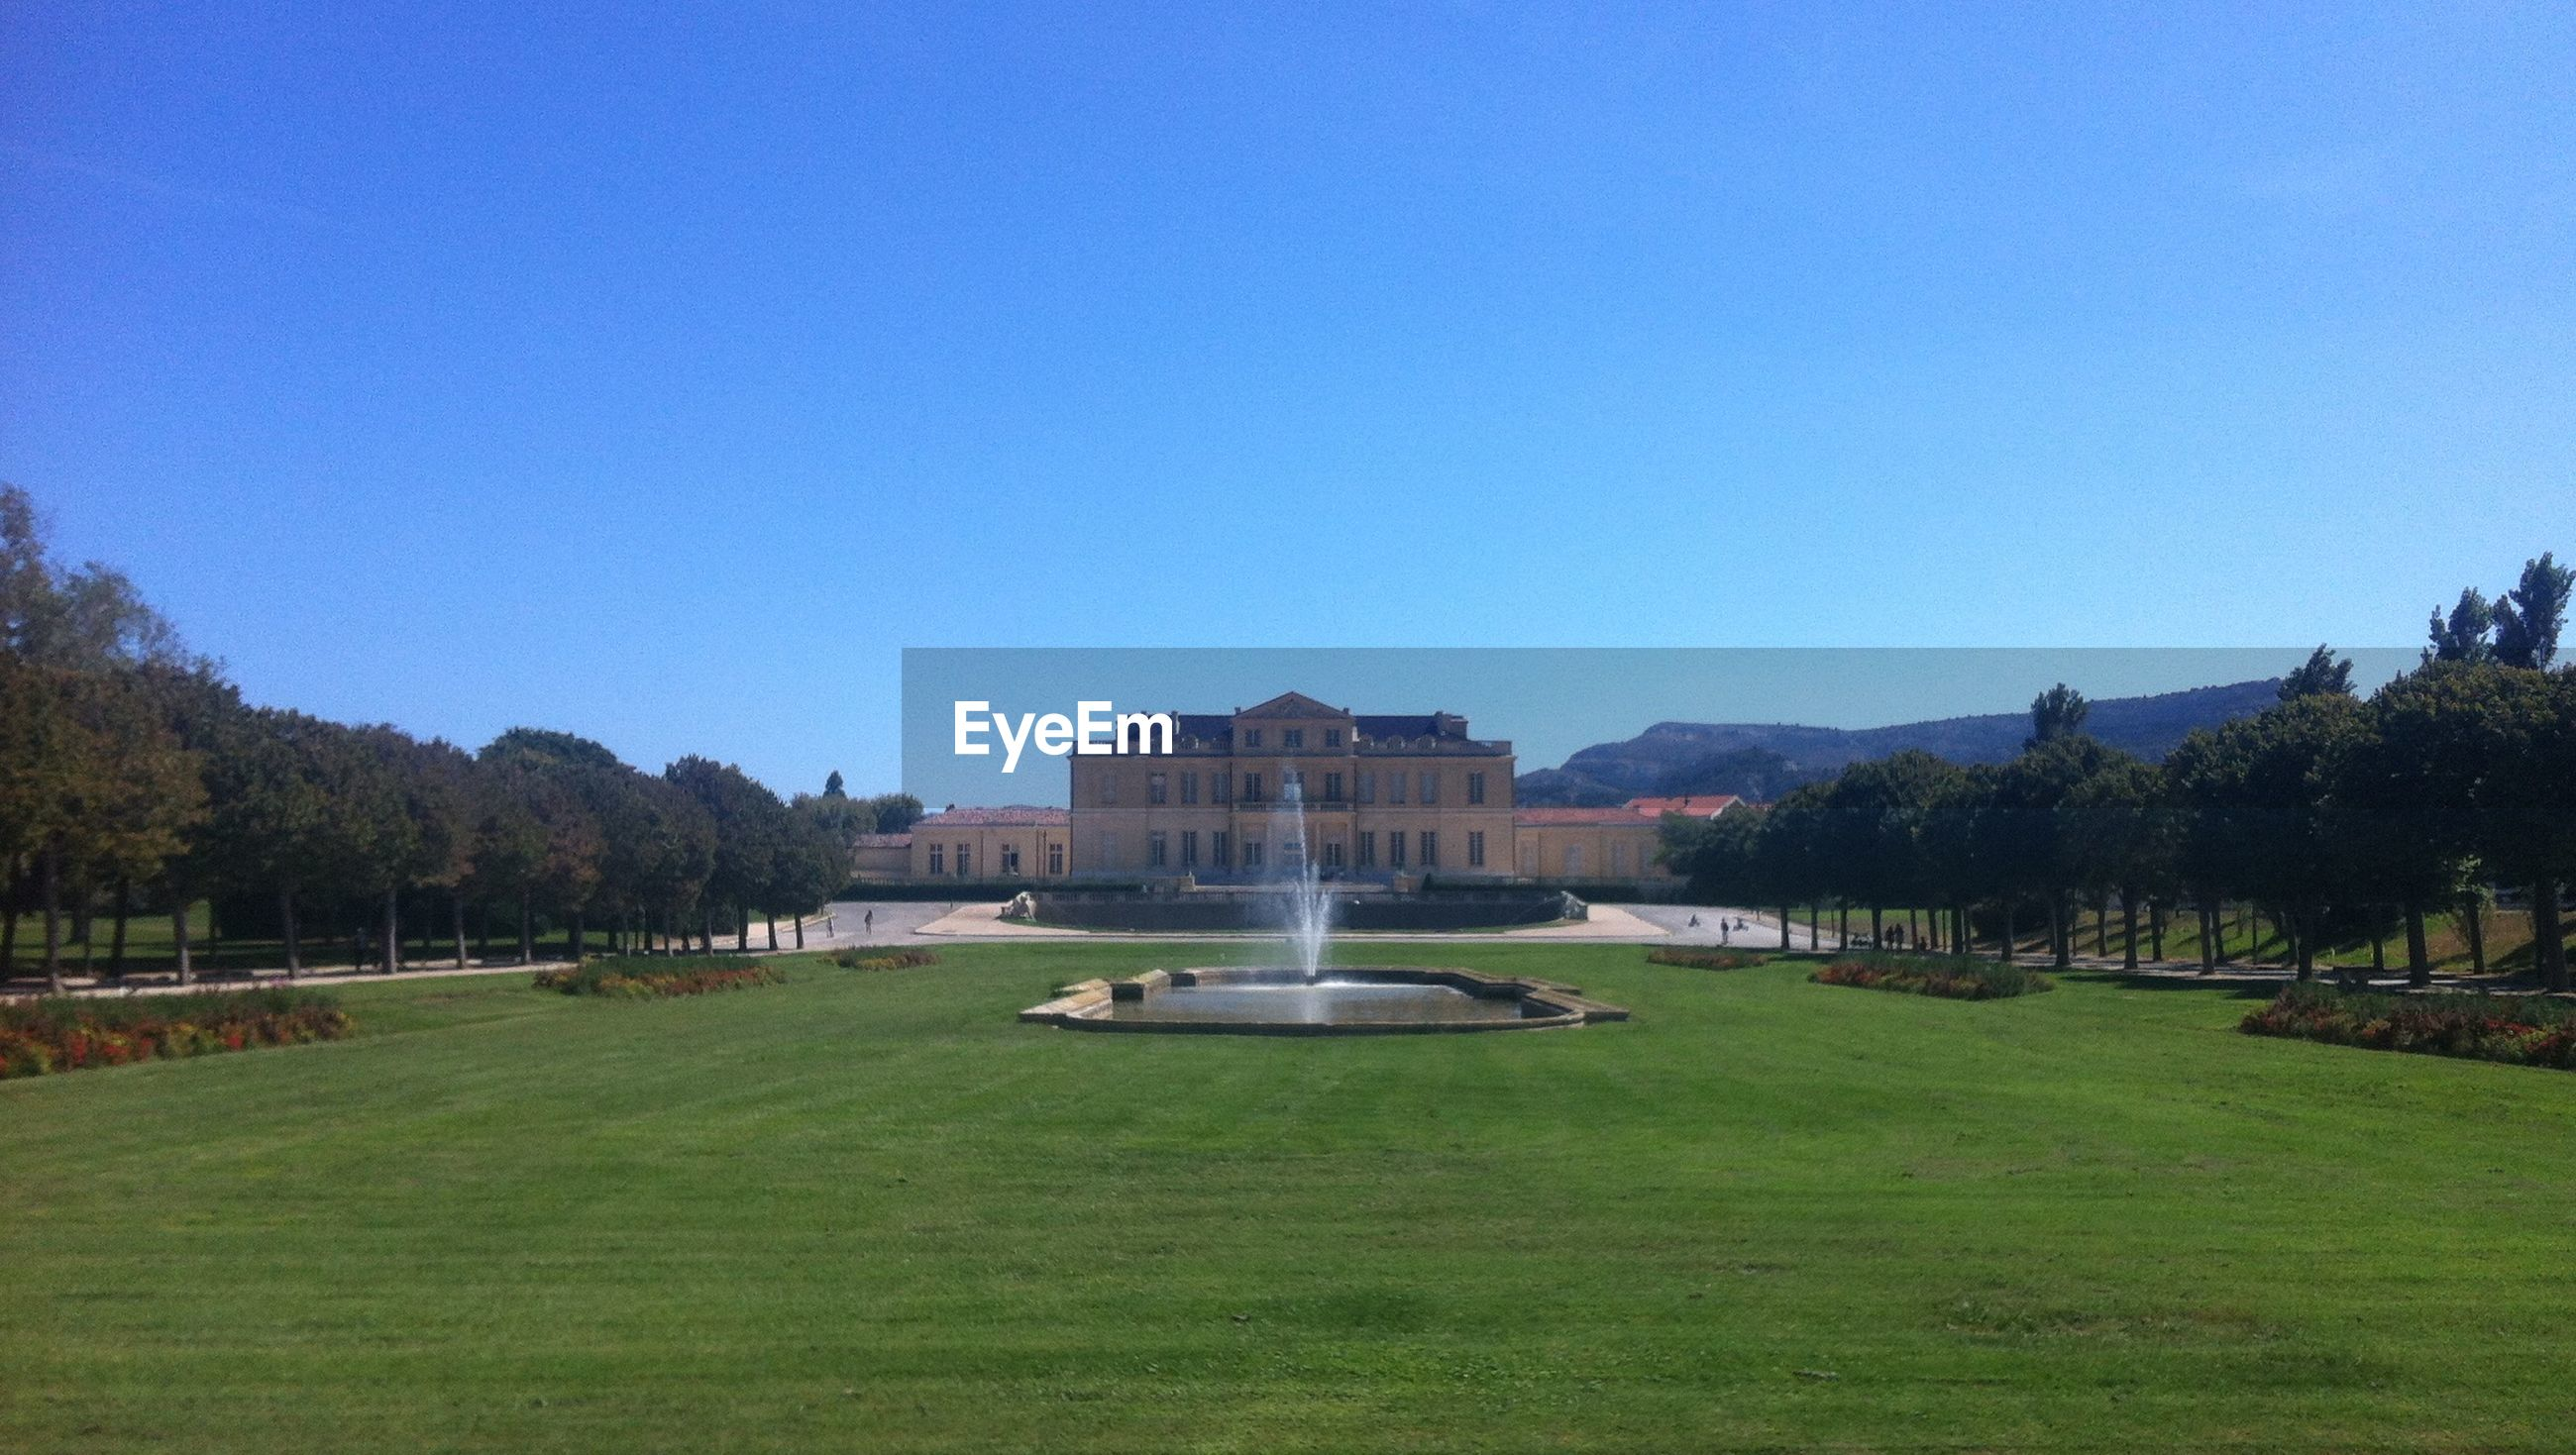 Fountain at lawn in front of building against clear sky